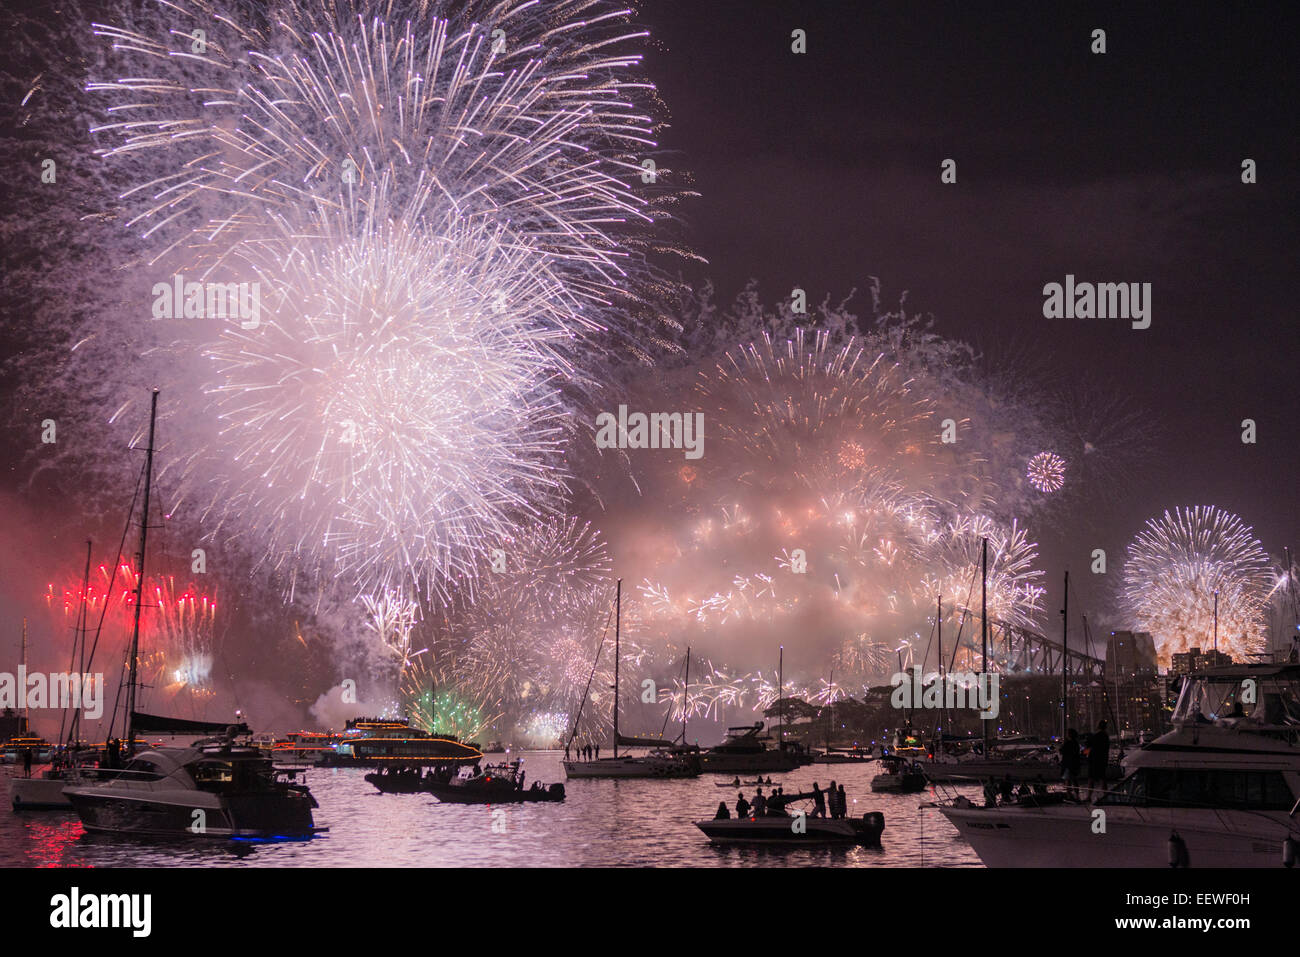 The start of a new year, 2015, with midnight fireworks over the Sydney Opera House, Harbour Bridge and boats in Stock Photo